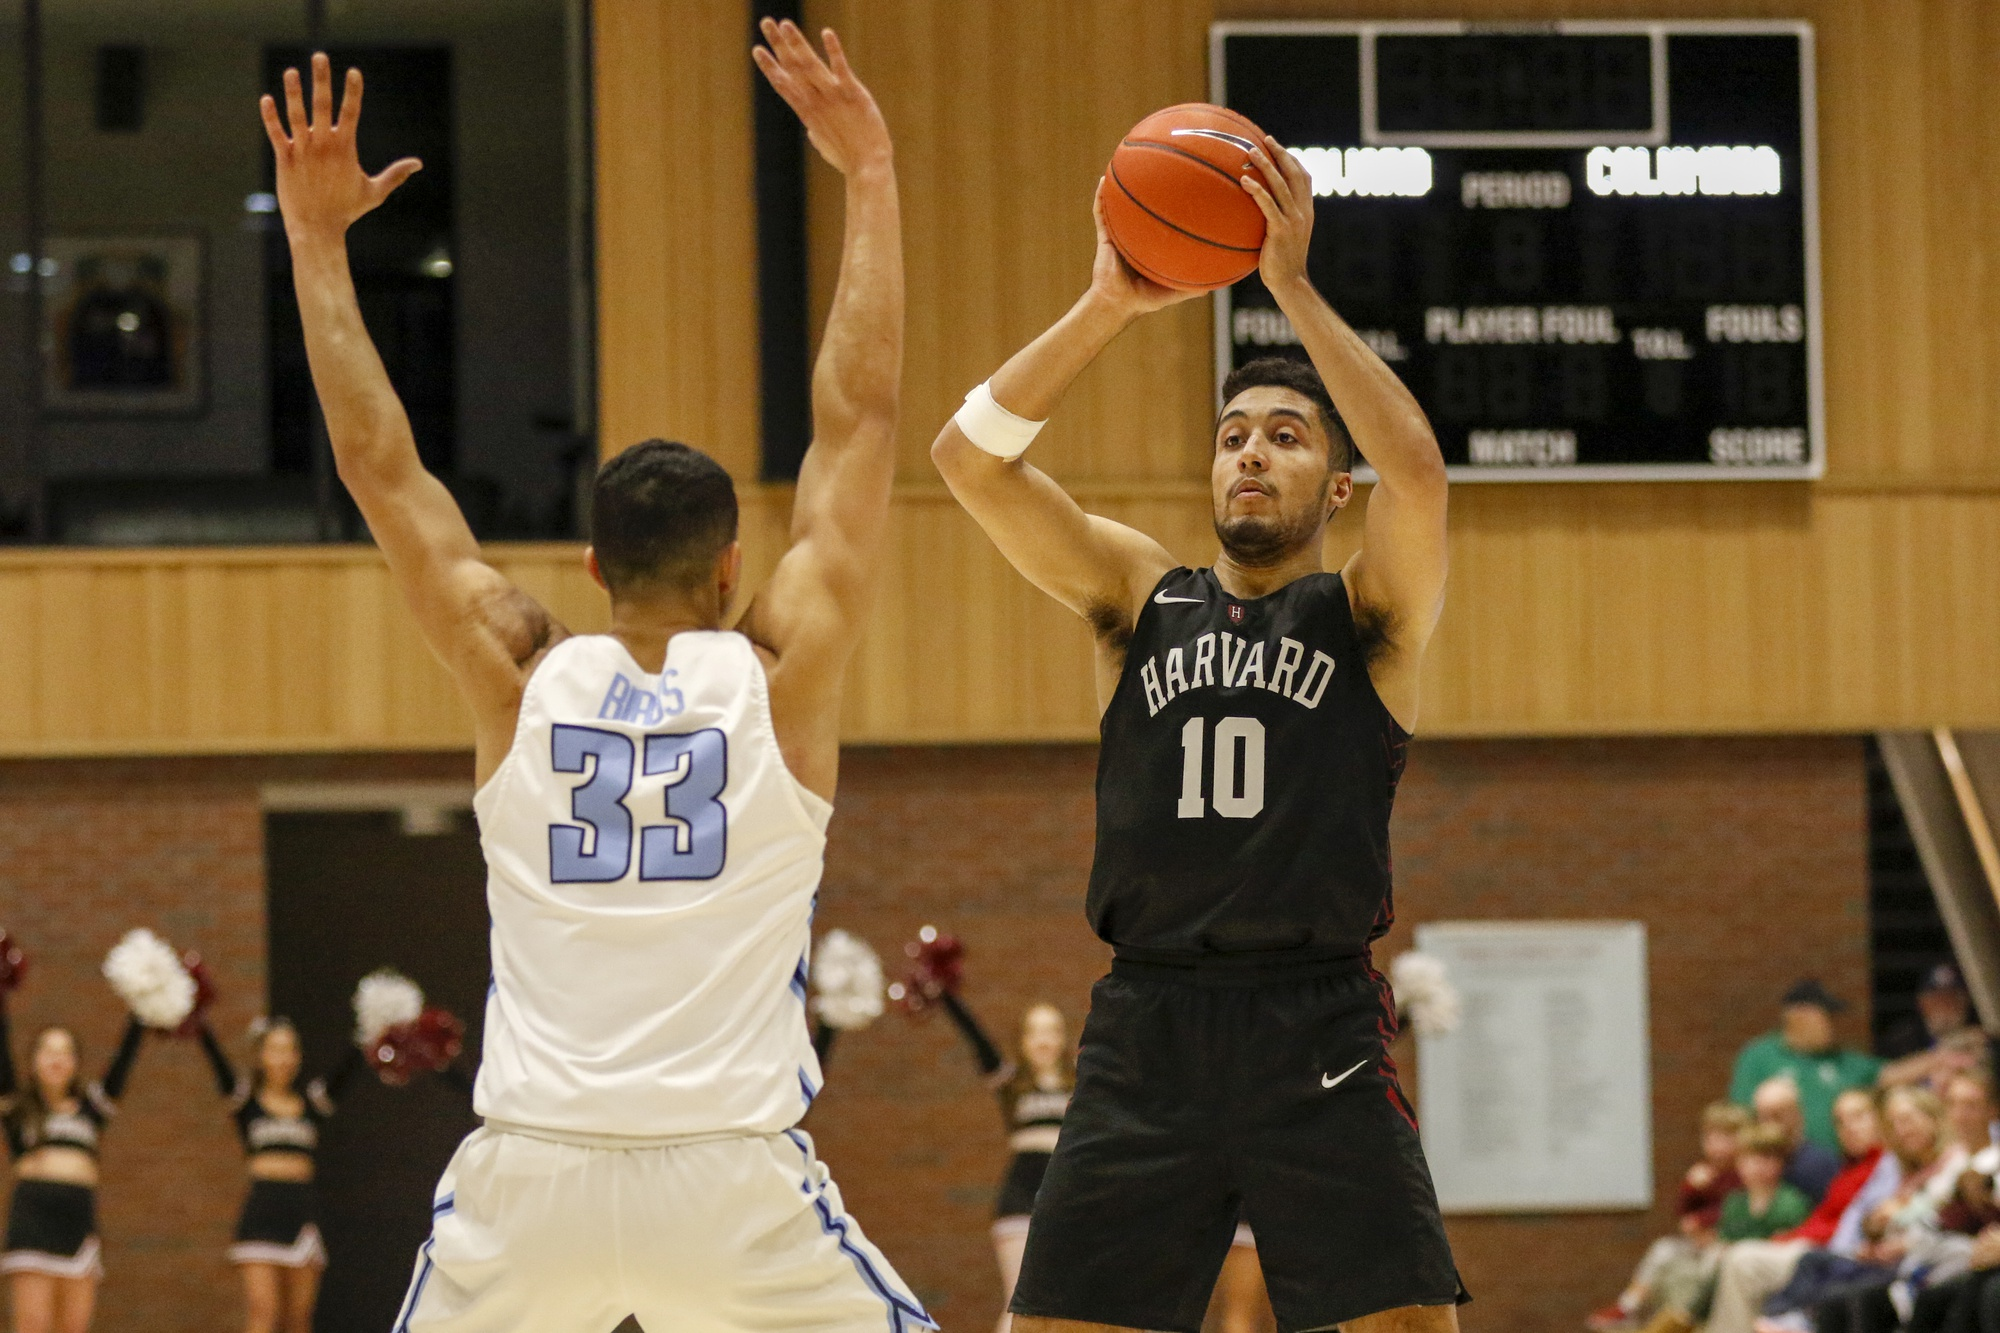 Noah Kirkwood looks to make a play with Columbia's Tai Bibbs guarding him. Kirkwood came up huge in overtime, when he scored 10 of his team-high 22 points in Harvard's win.